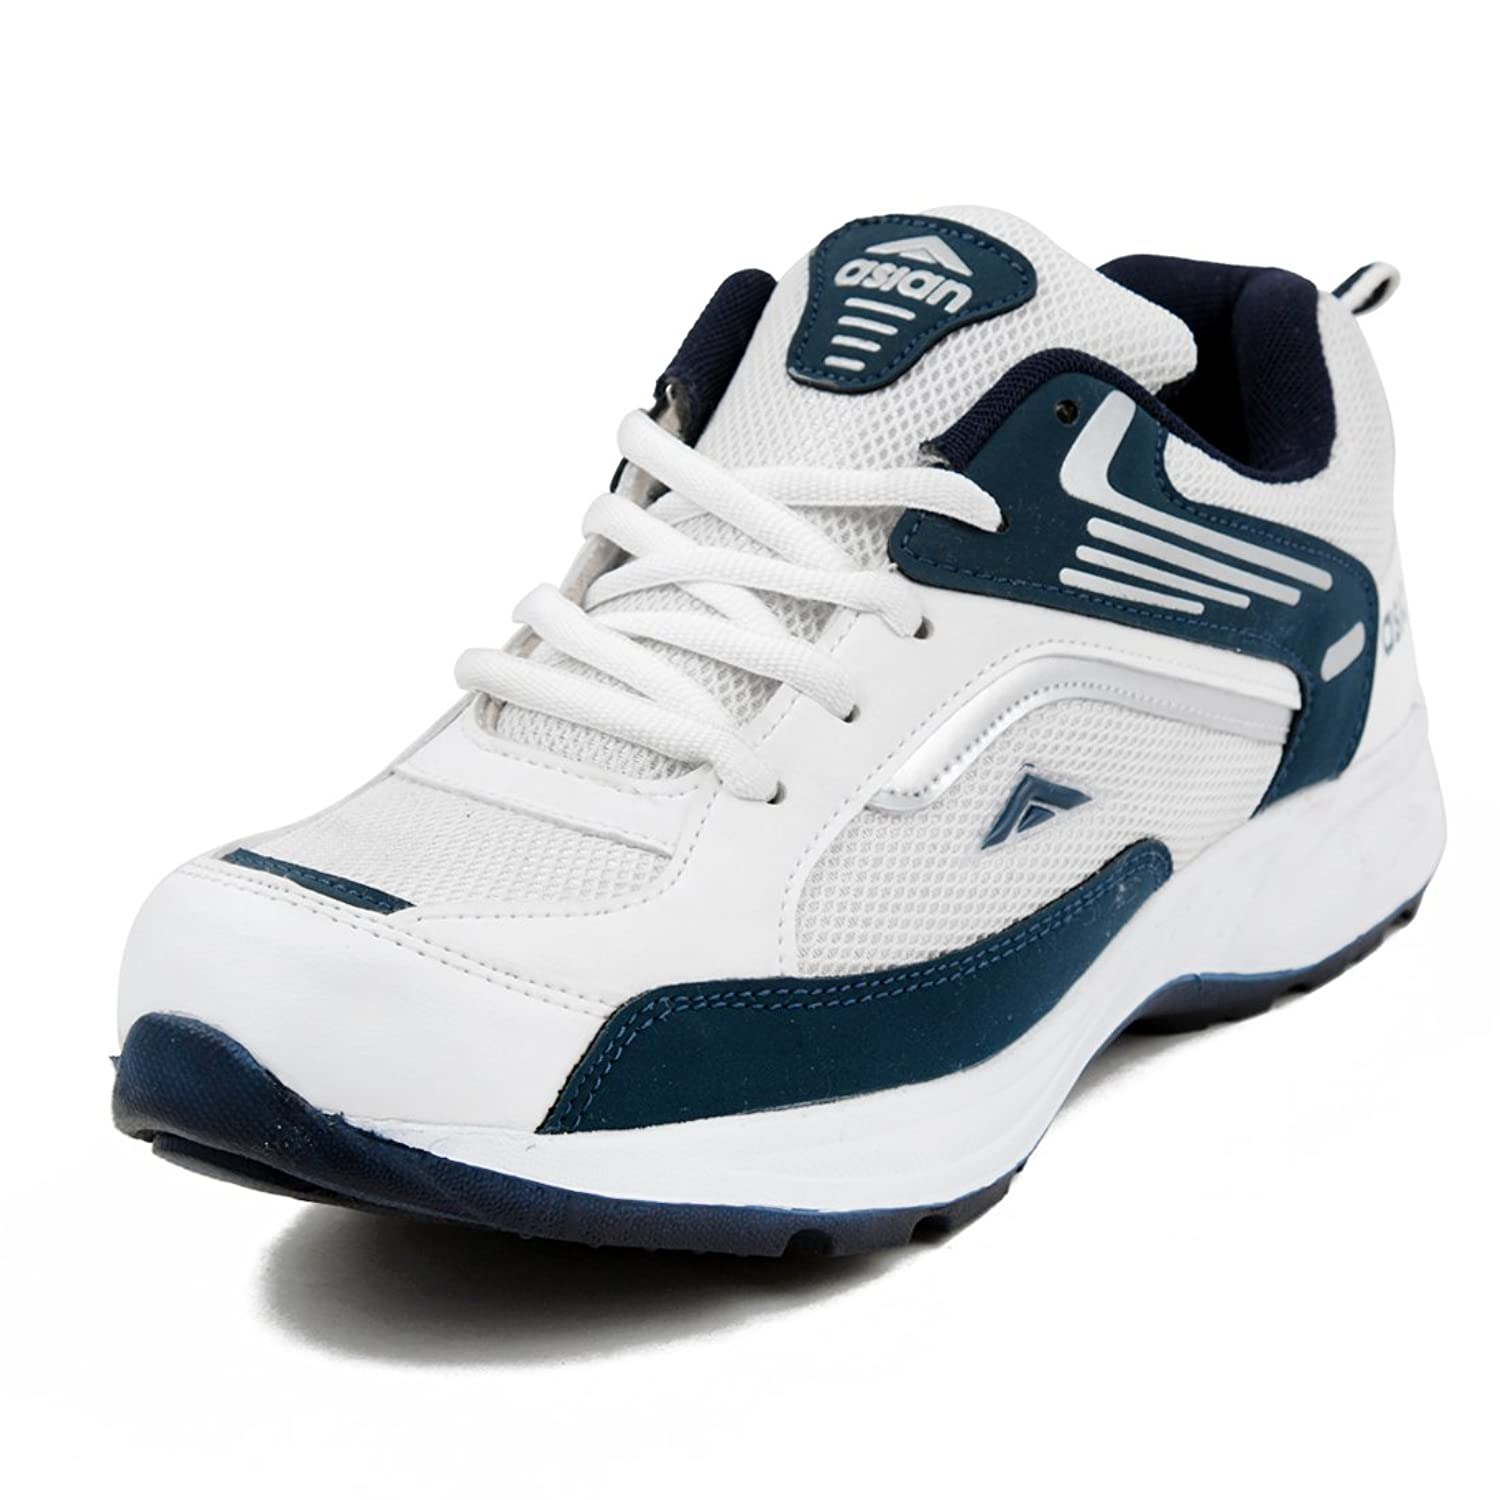 Asian Shoes Wonder 13 White Navy Blue Mens Sports Shoes Buy Online